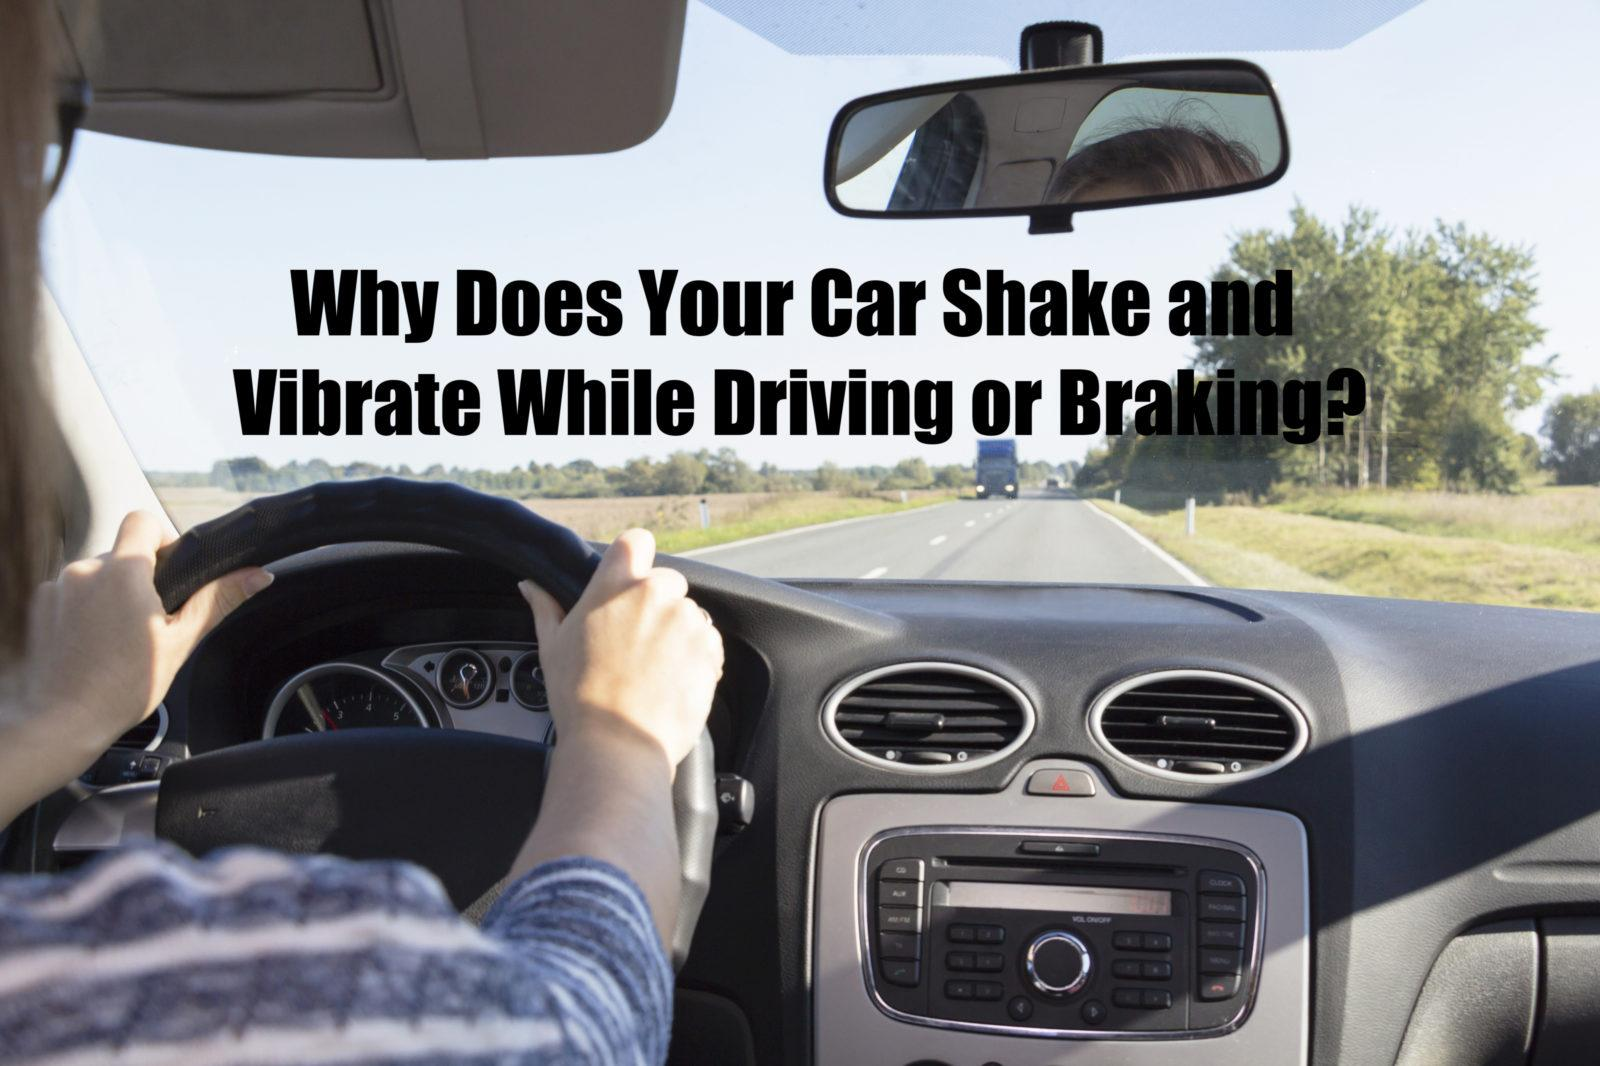 Why does your car shake or vibrate while driving or braking?